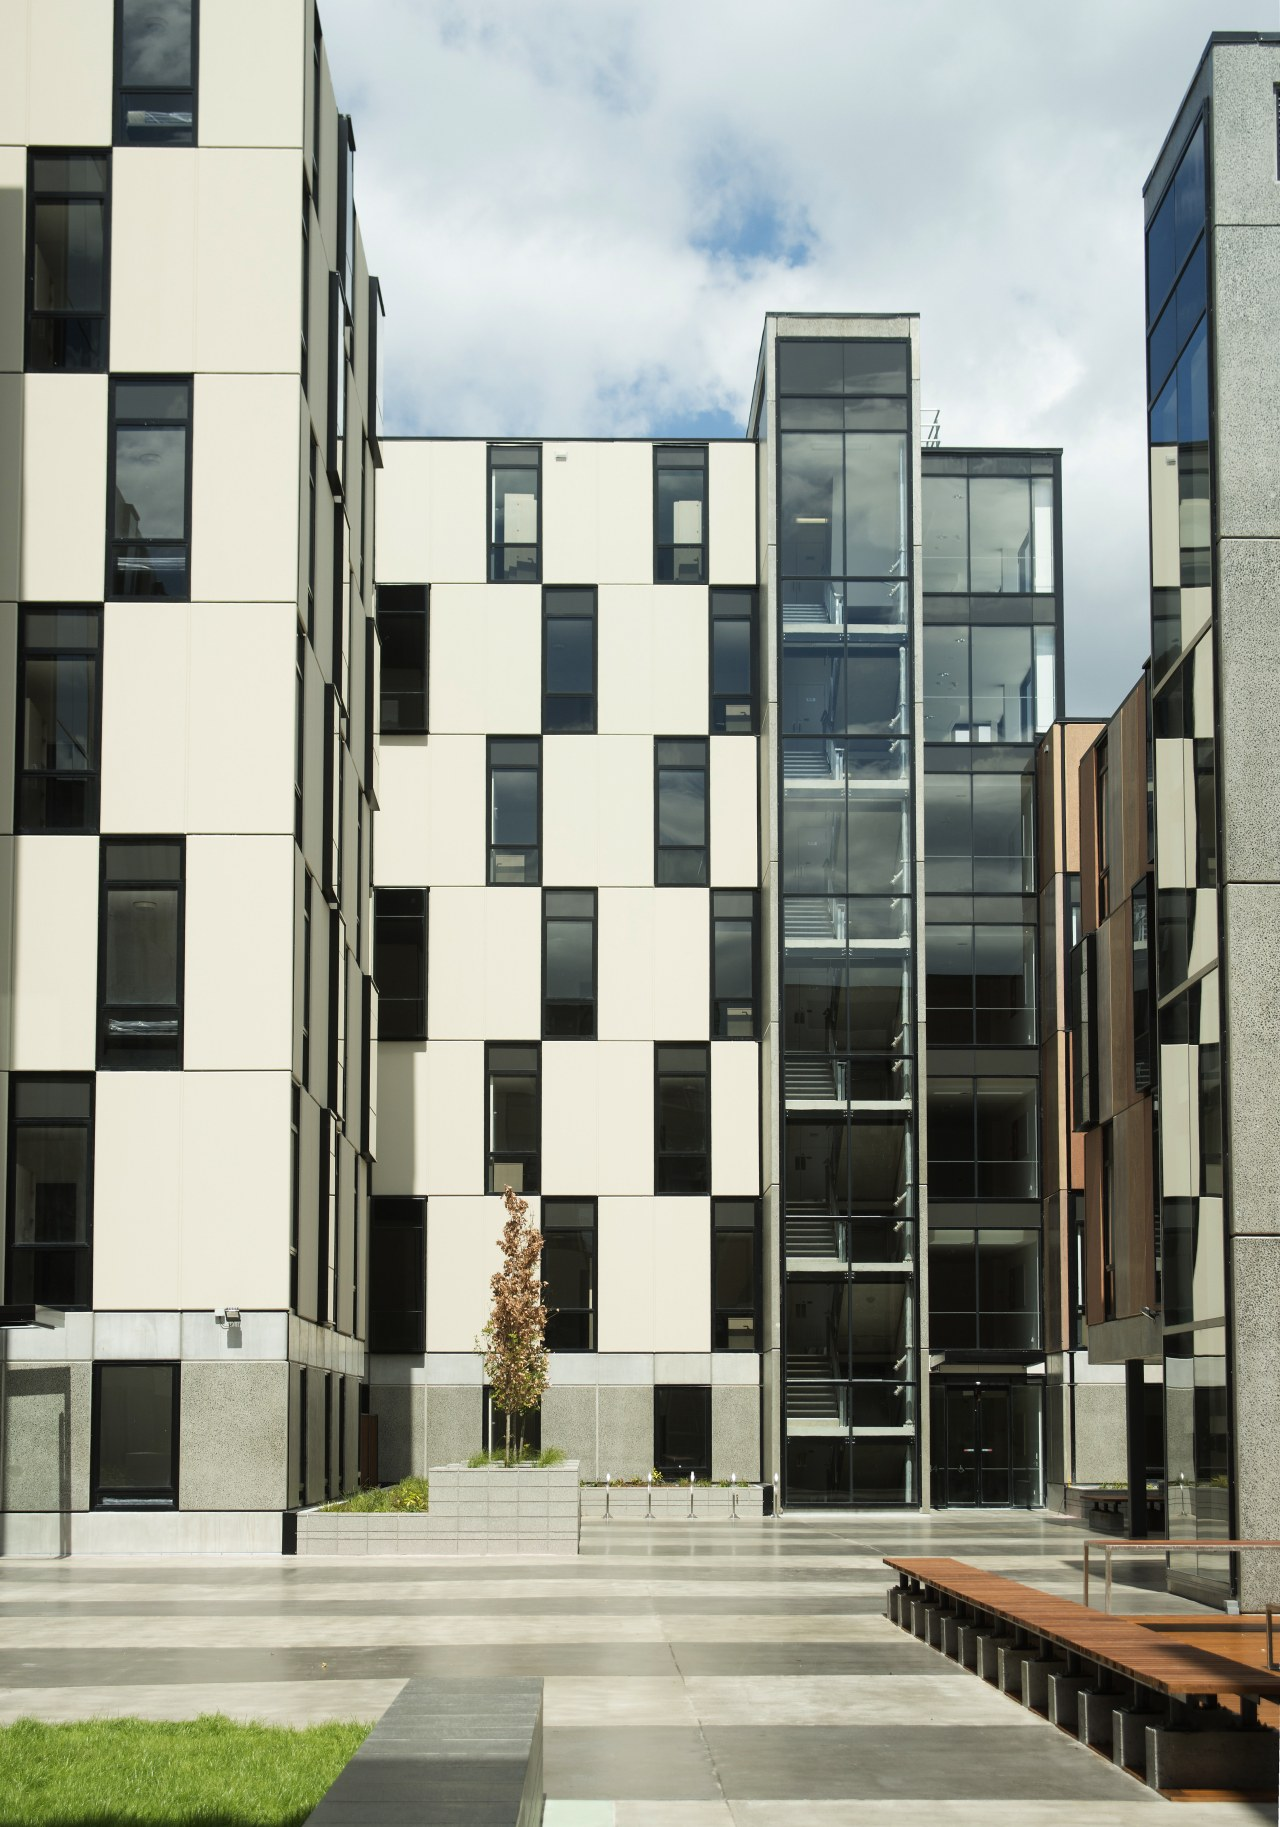 The Carlaw Park Student Village features customised door apartment, architecture, building, commercial building, condominium, corporate headquarters, facade, house, mixed use, neighbourhood, residential area, urban design, window, white